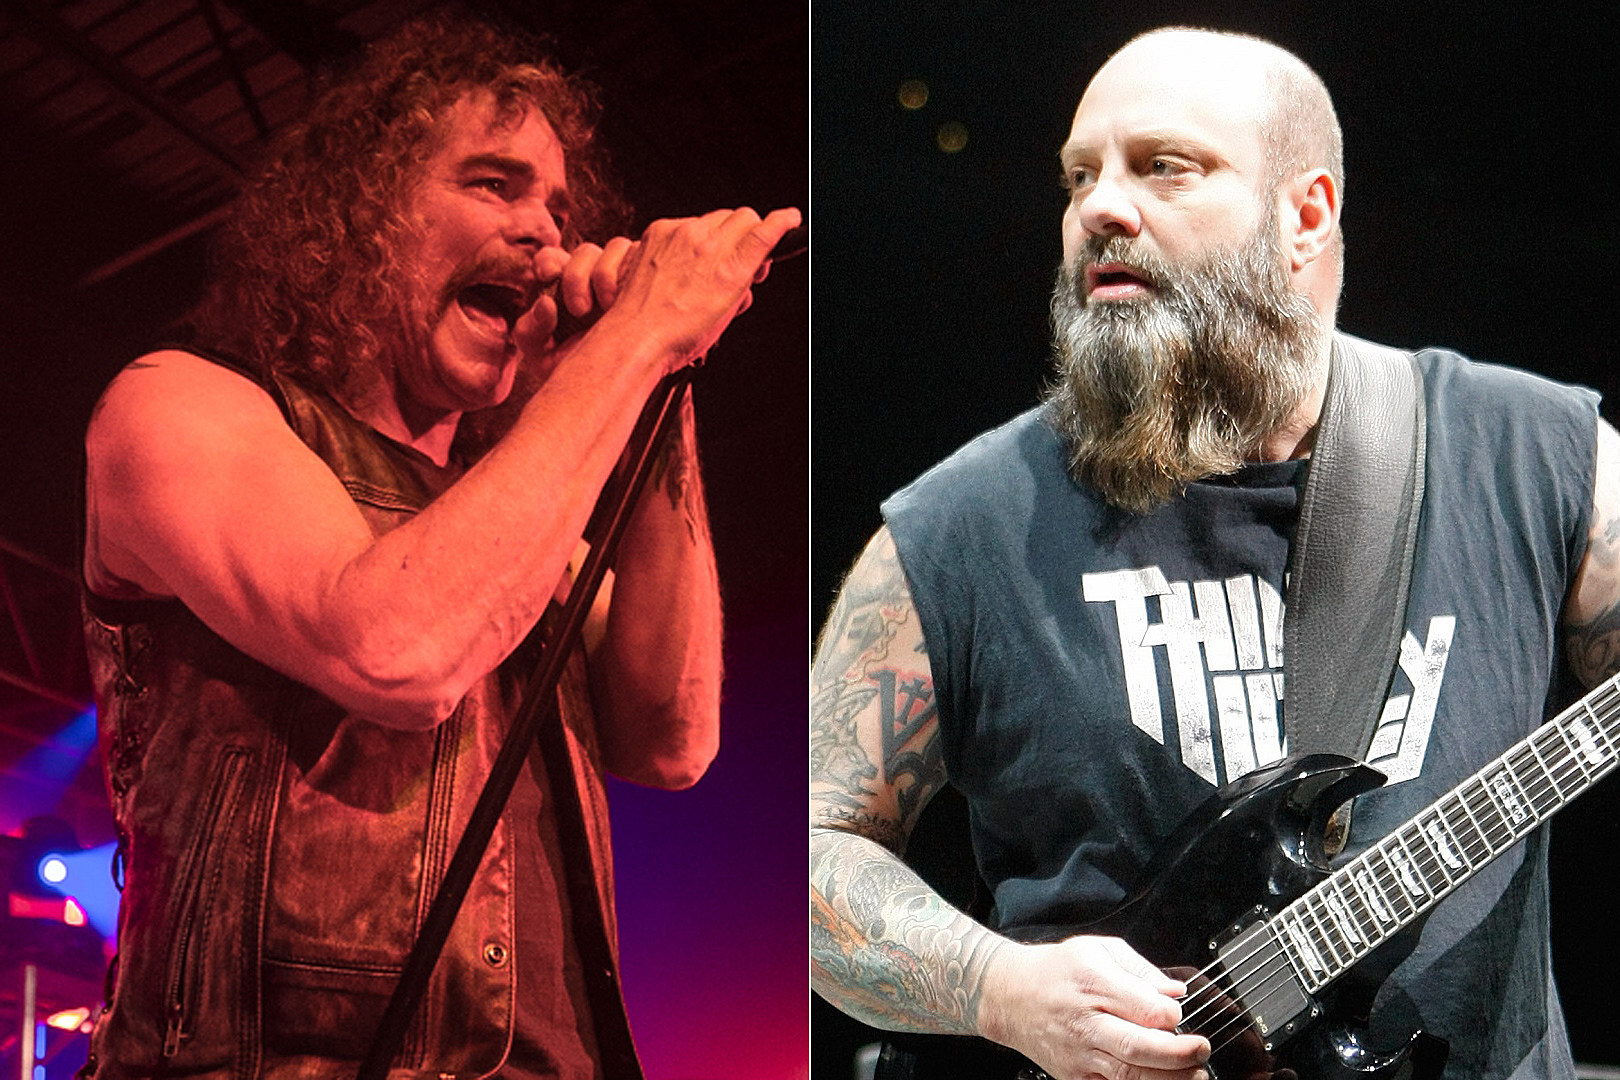 Overkill and Crowbar Tapped as Headliners for 2017 Metal Alliance Tour, Dates Announced